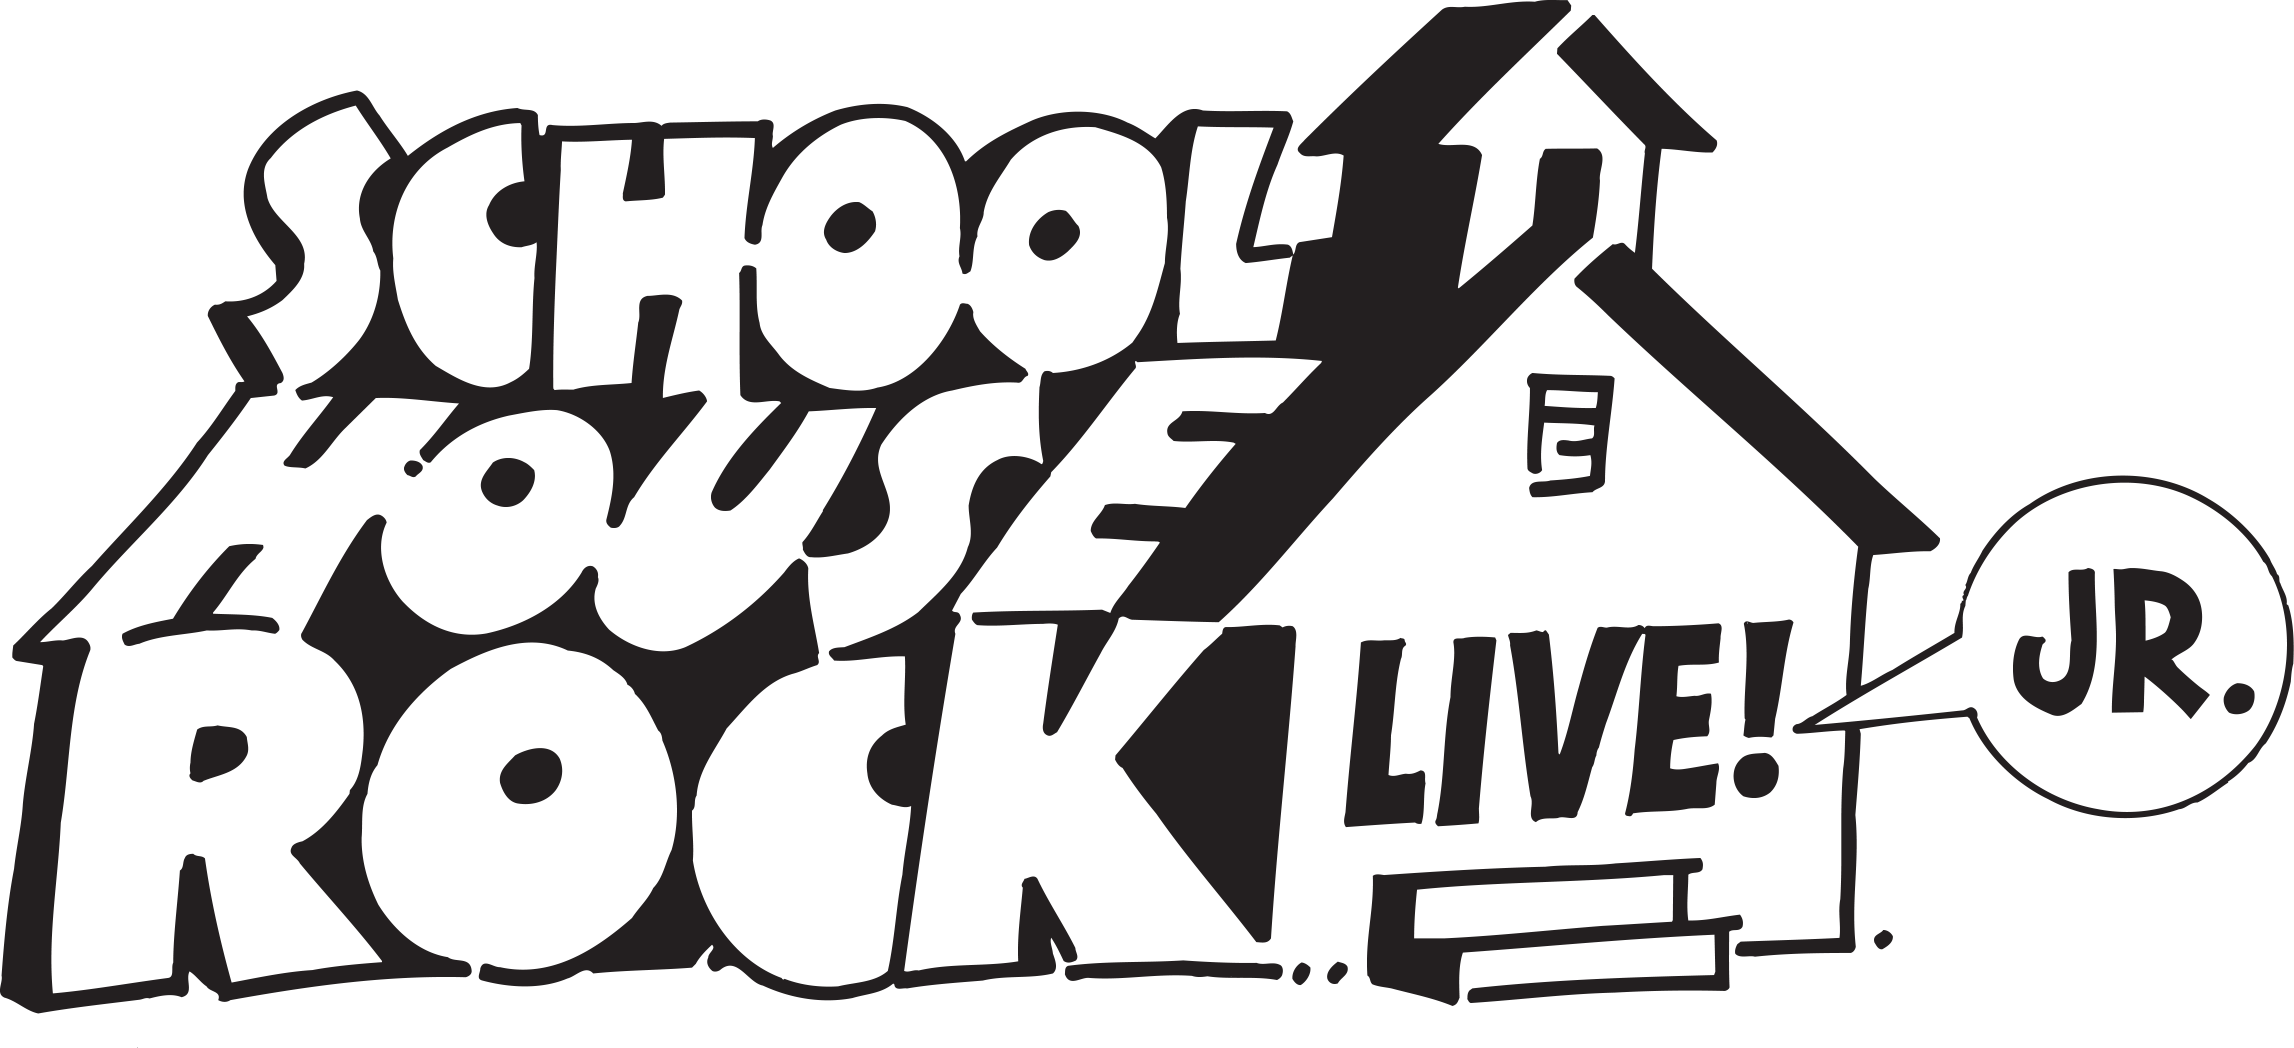 School house rock clipart banner royalty free stock Index of /Playbill/SHRL16 banner royalty free stock